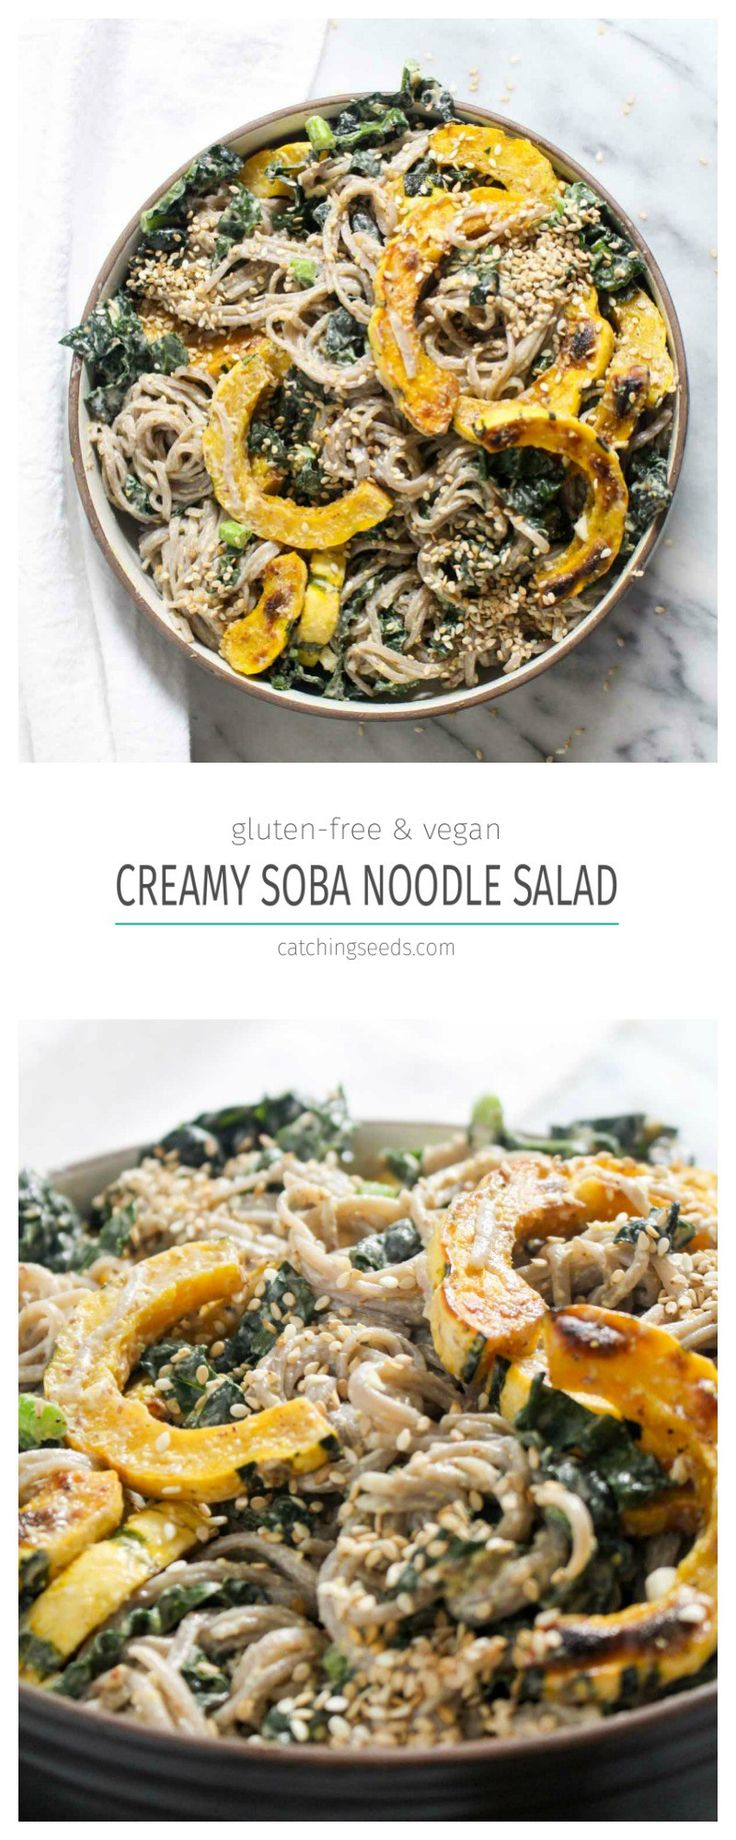 This healthy 9 ingredient Soba Noodle Salad recipe is coated in a creamy and nutty tahini dressing and studded with caramelized winter squash and fresh kale. This gluten-free and vegan meal is equally perfect for lunch or dinner. | CatchingSeeds.com